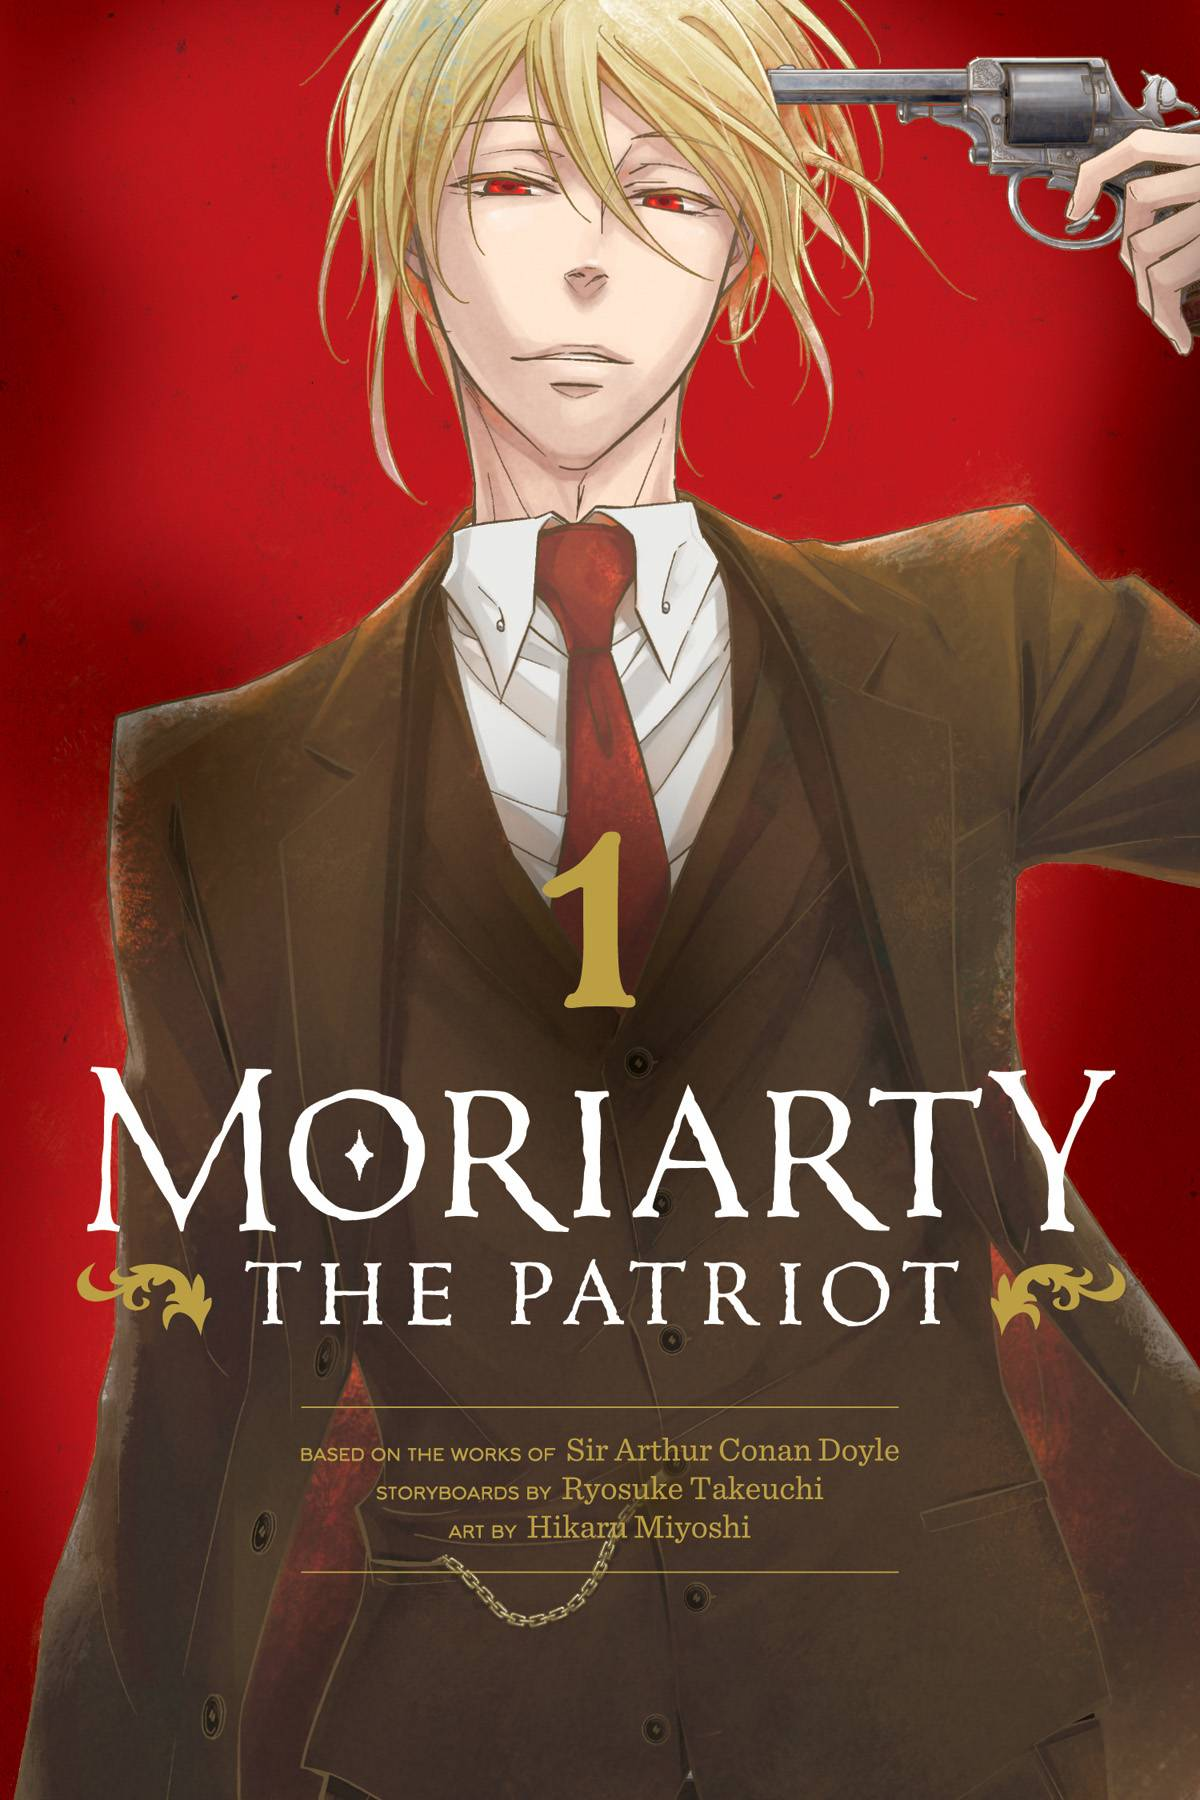 MORIARTY THE PATRIOT GN VOL 01